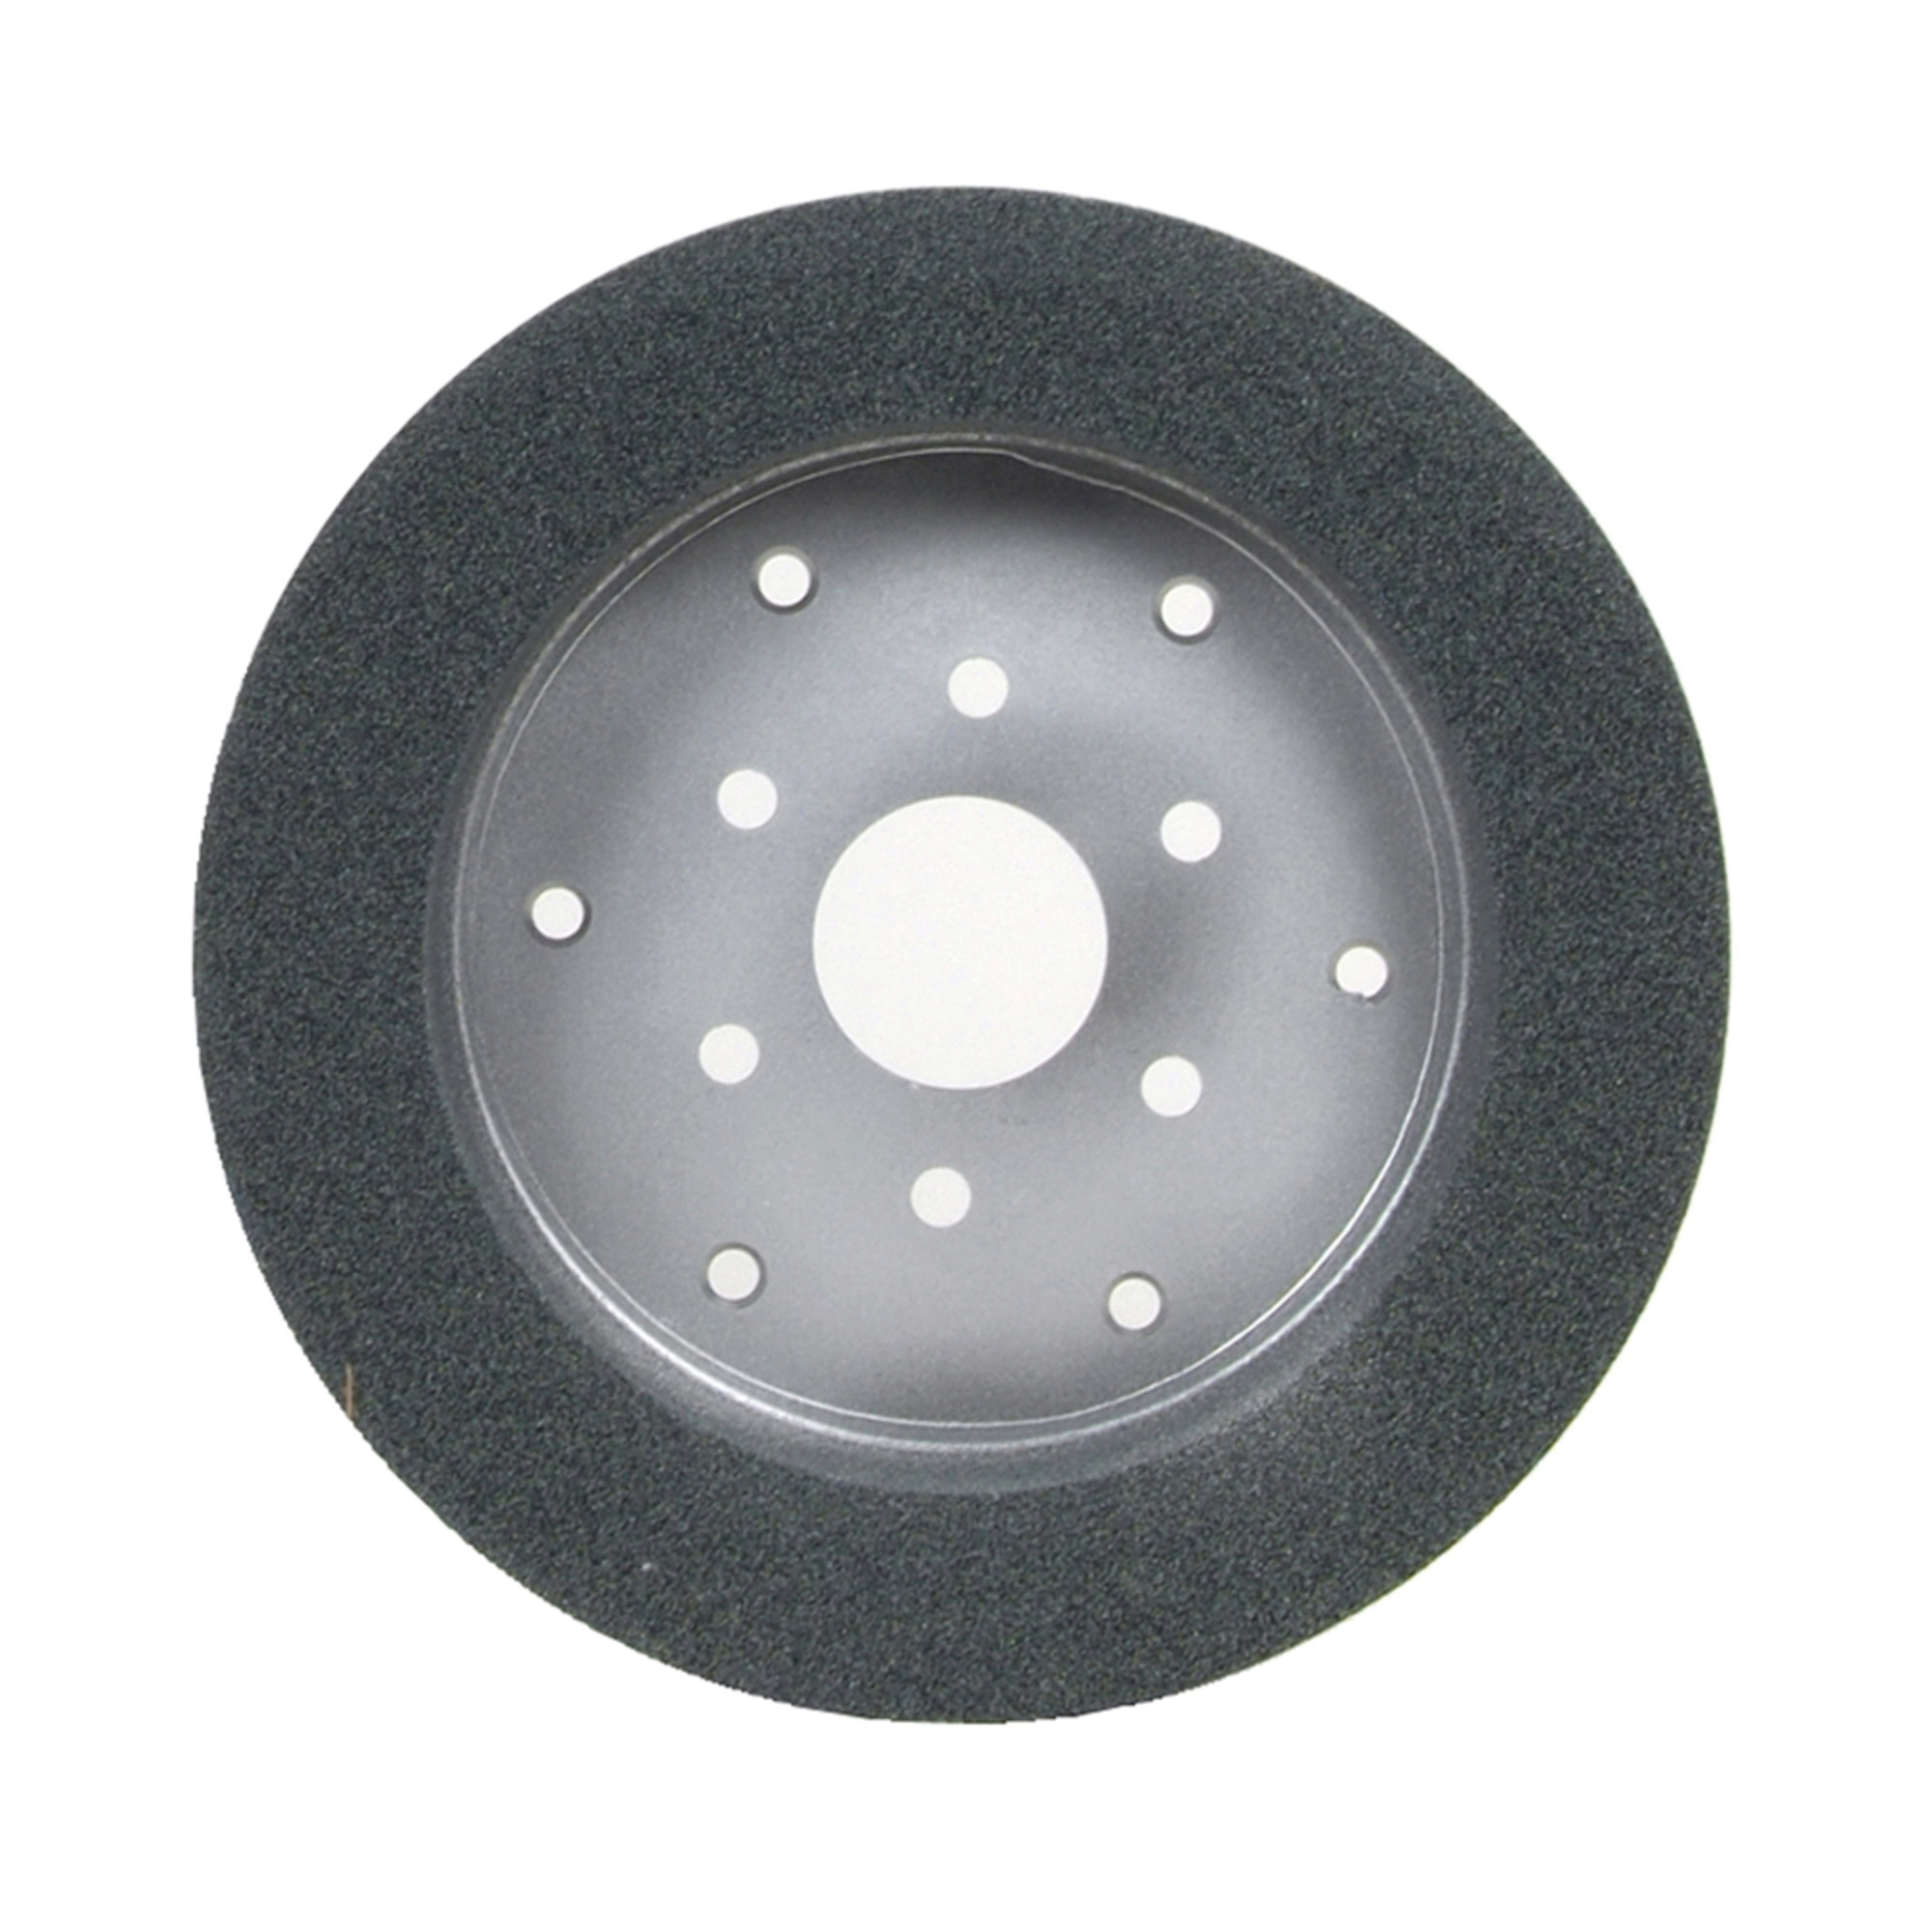 Norton® 66253161675 39C Cylinder Toolroom Wheel, 10 in Dia x 2 in THK, 7 in Center Hole, 60 Grit, Silicon Carbide Abrasive